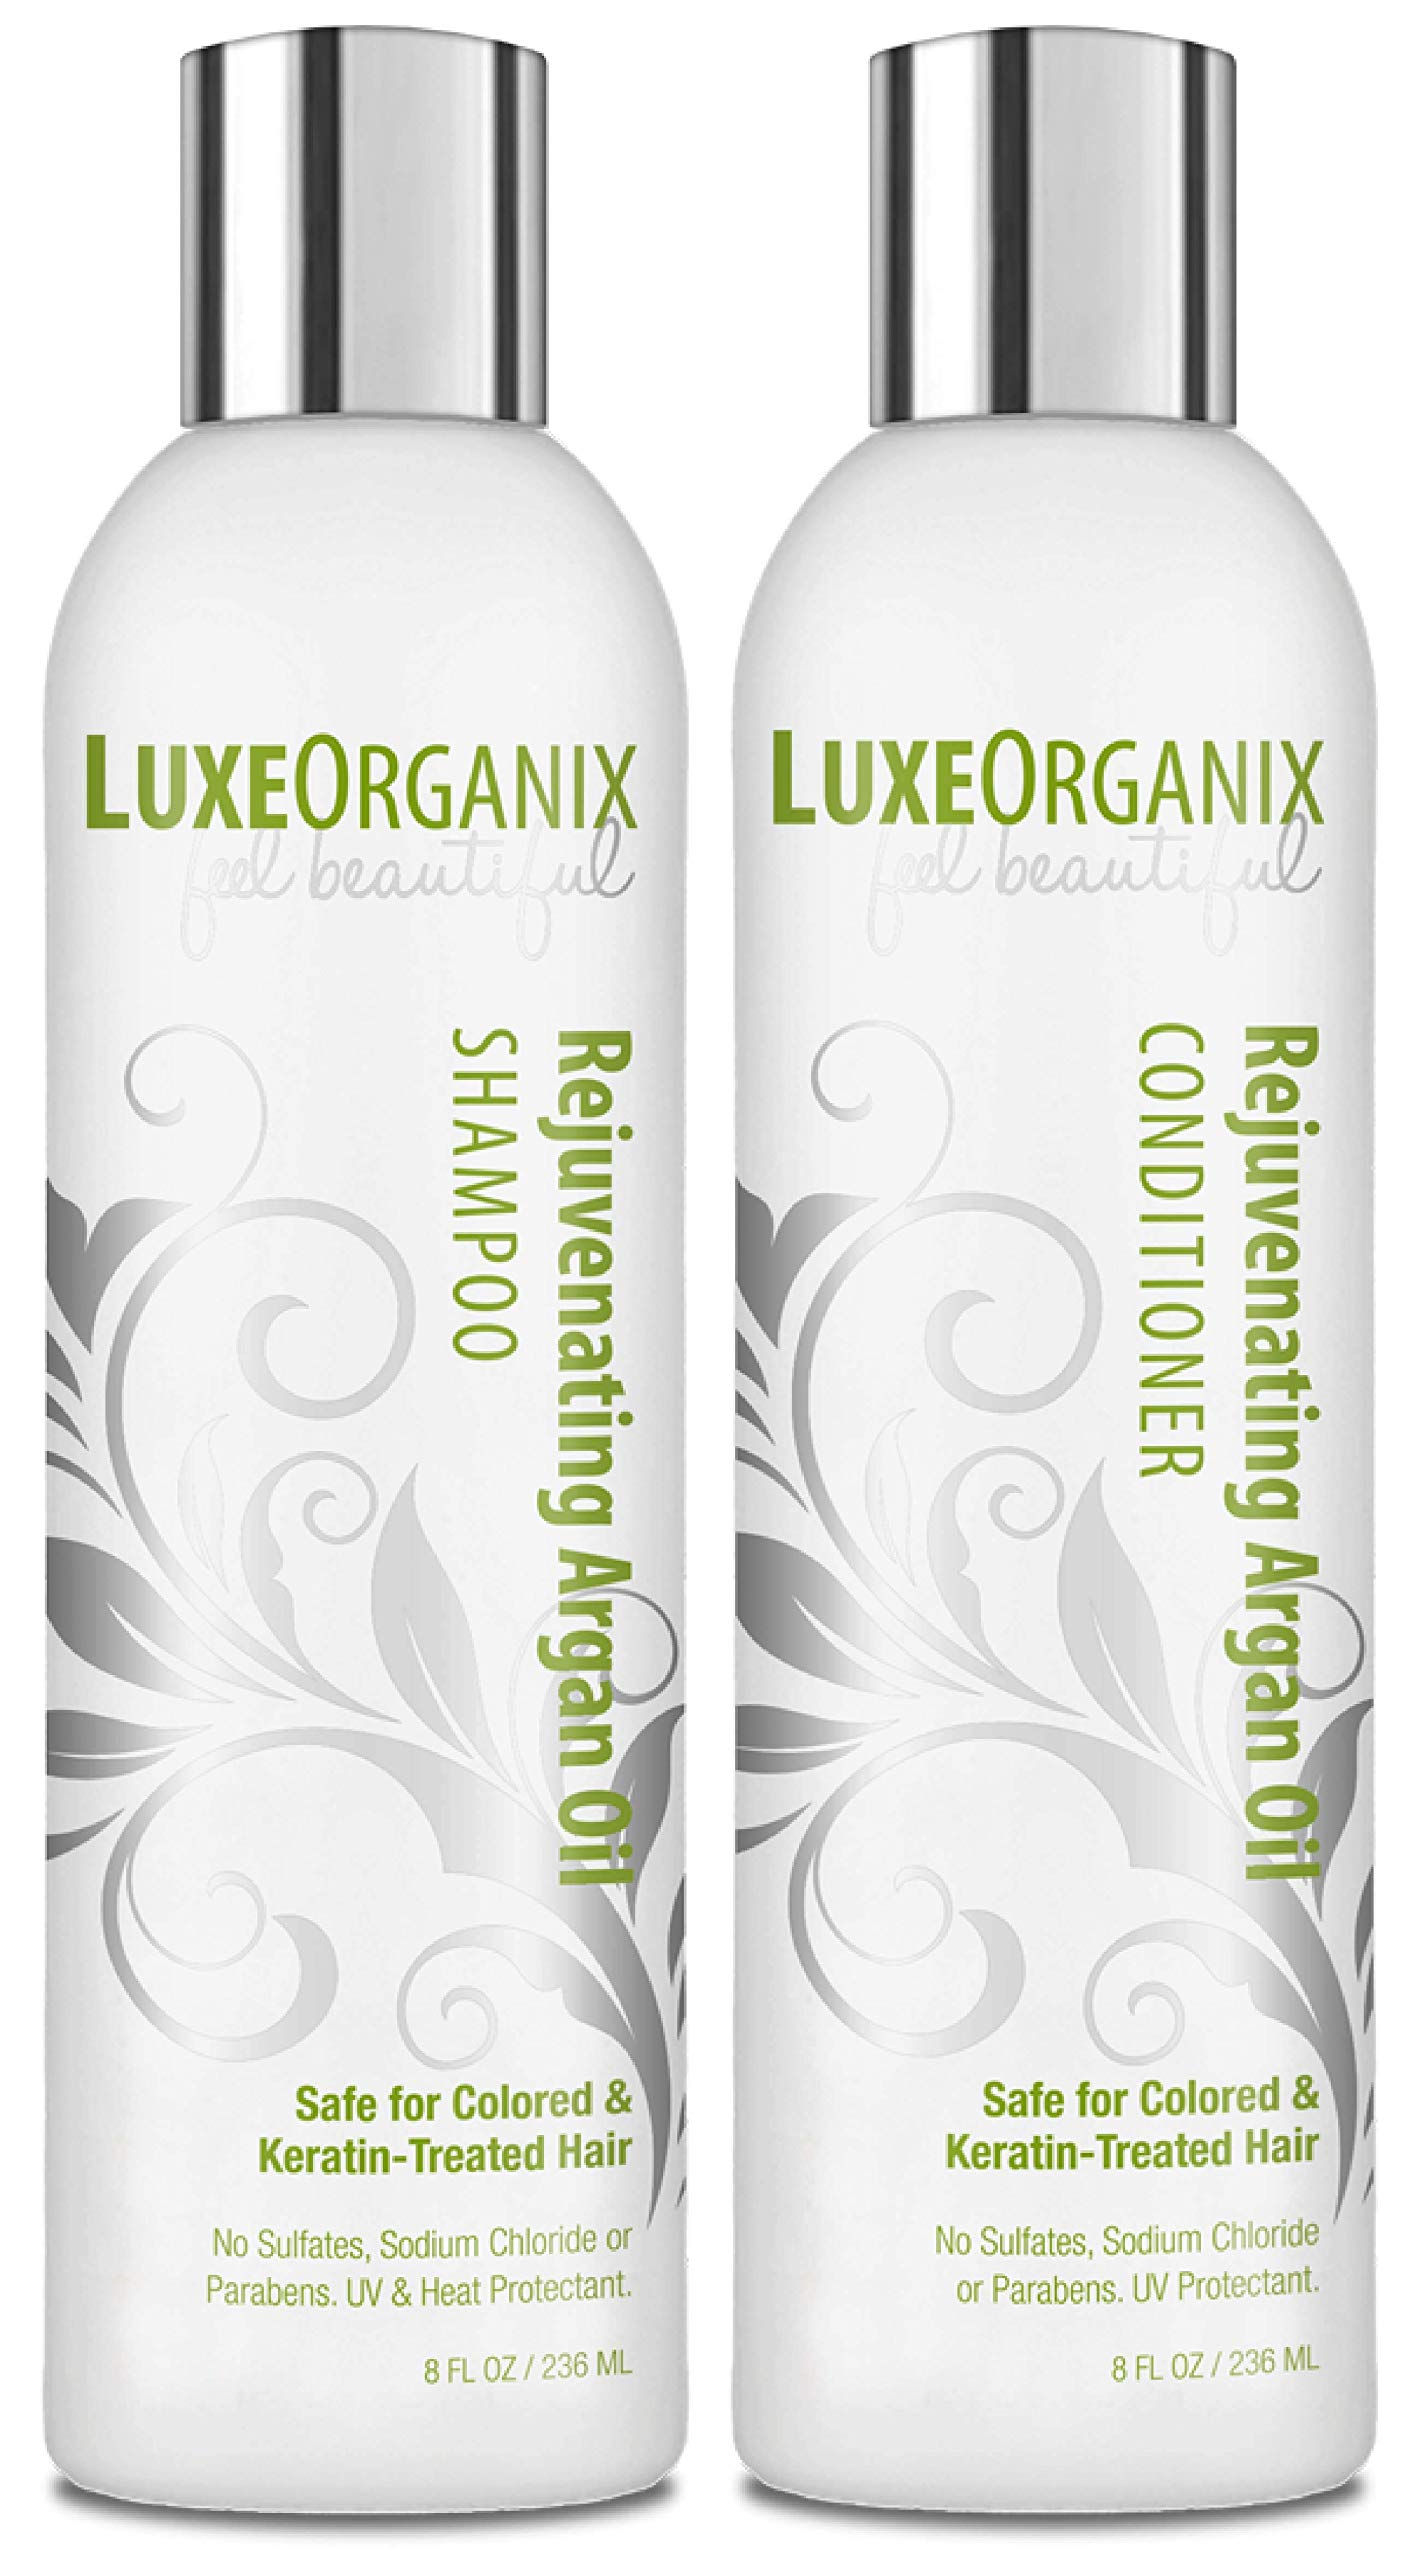 Moroccan Oil Shampoo and Conditioner: Sulfate Free for Color Treated and Keratin Hair Treatments - Sodium Chloride Free, Best for Curly, Frizzy or Dry Hair. No Parabens or Salt. (8 oz Set) Made In USA